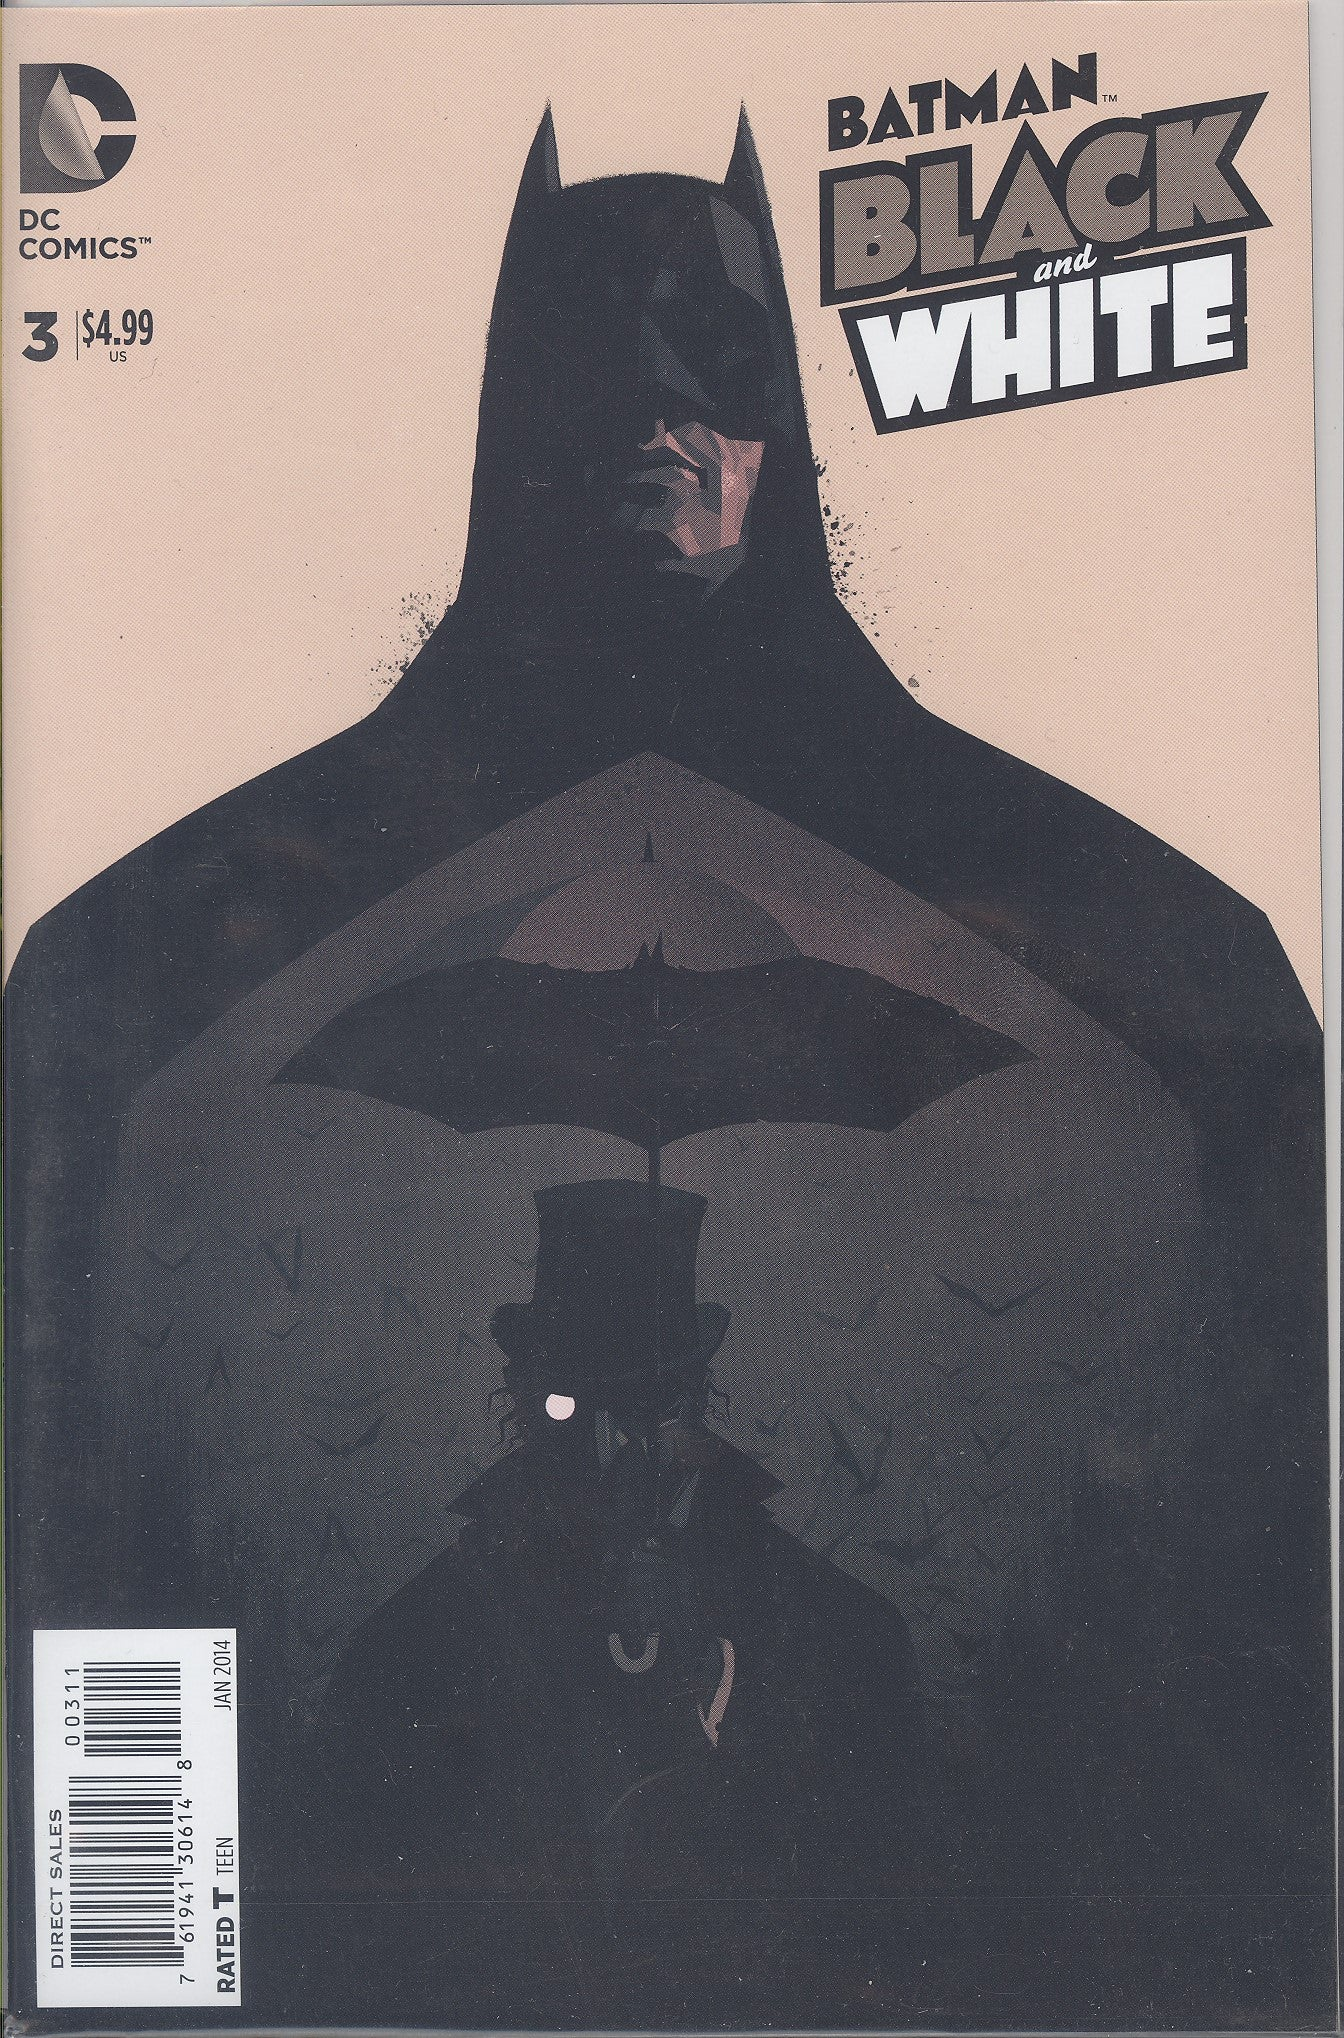 Batman Black & White #3 (of 6) VF/NM